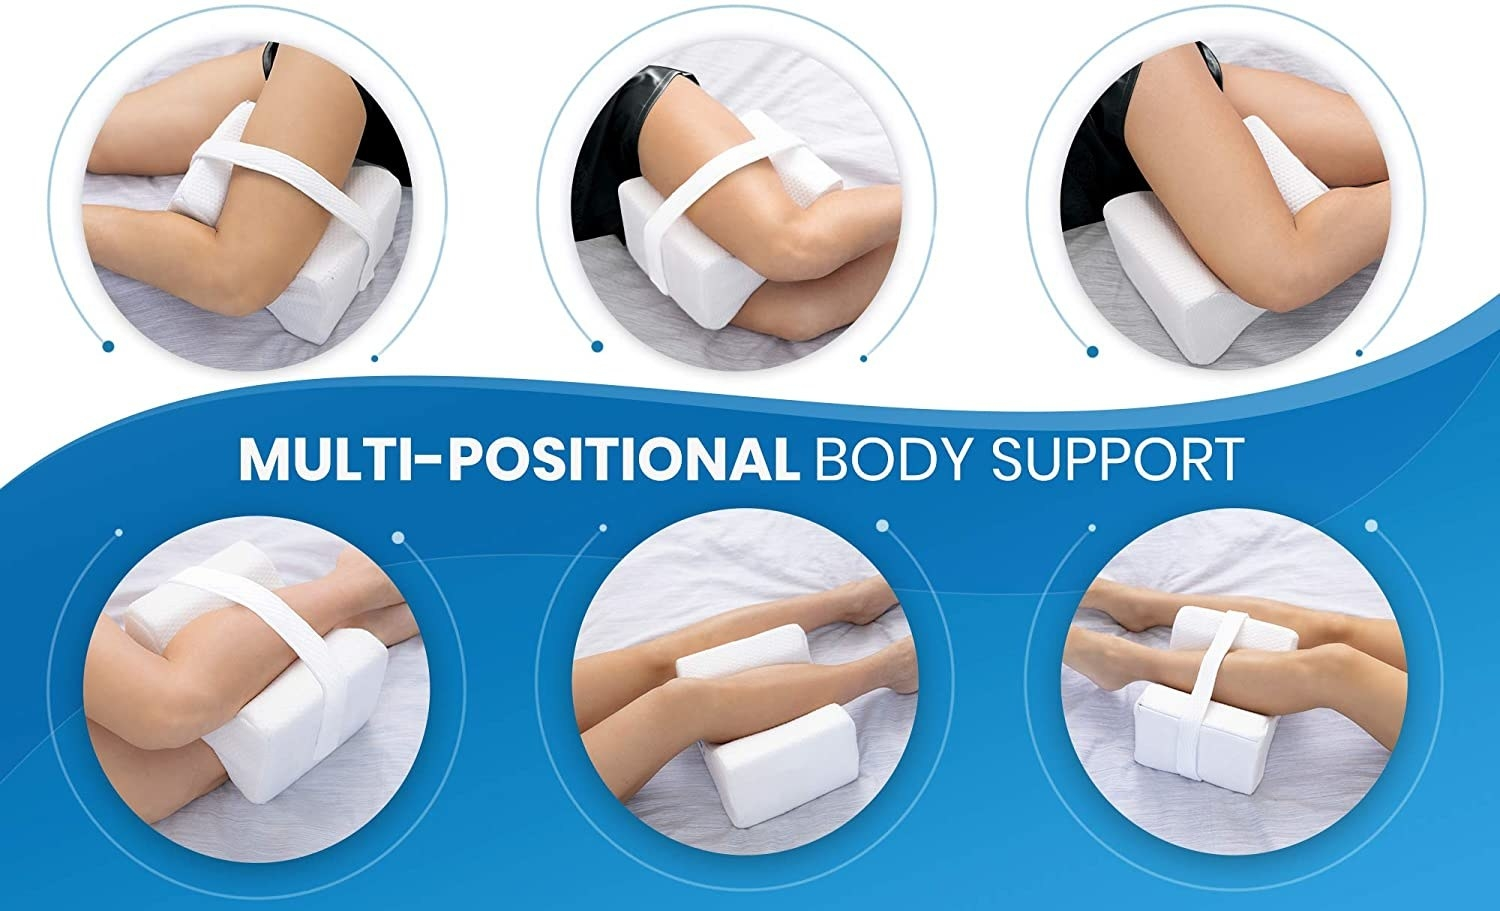 Model using the pillow in different positions